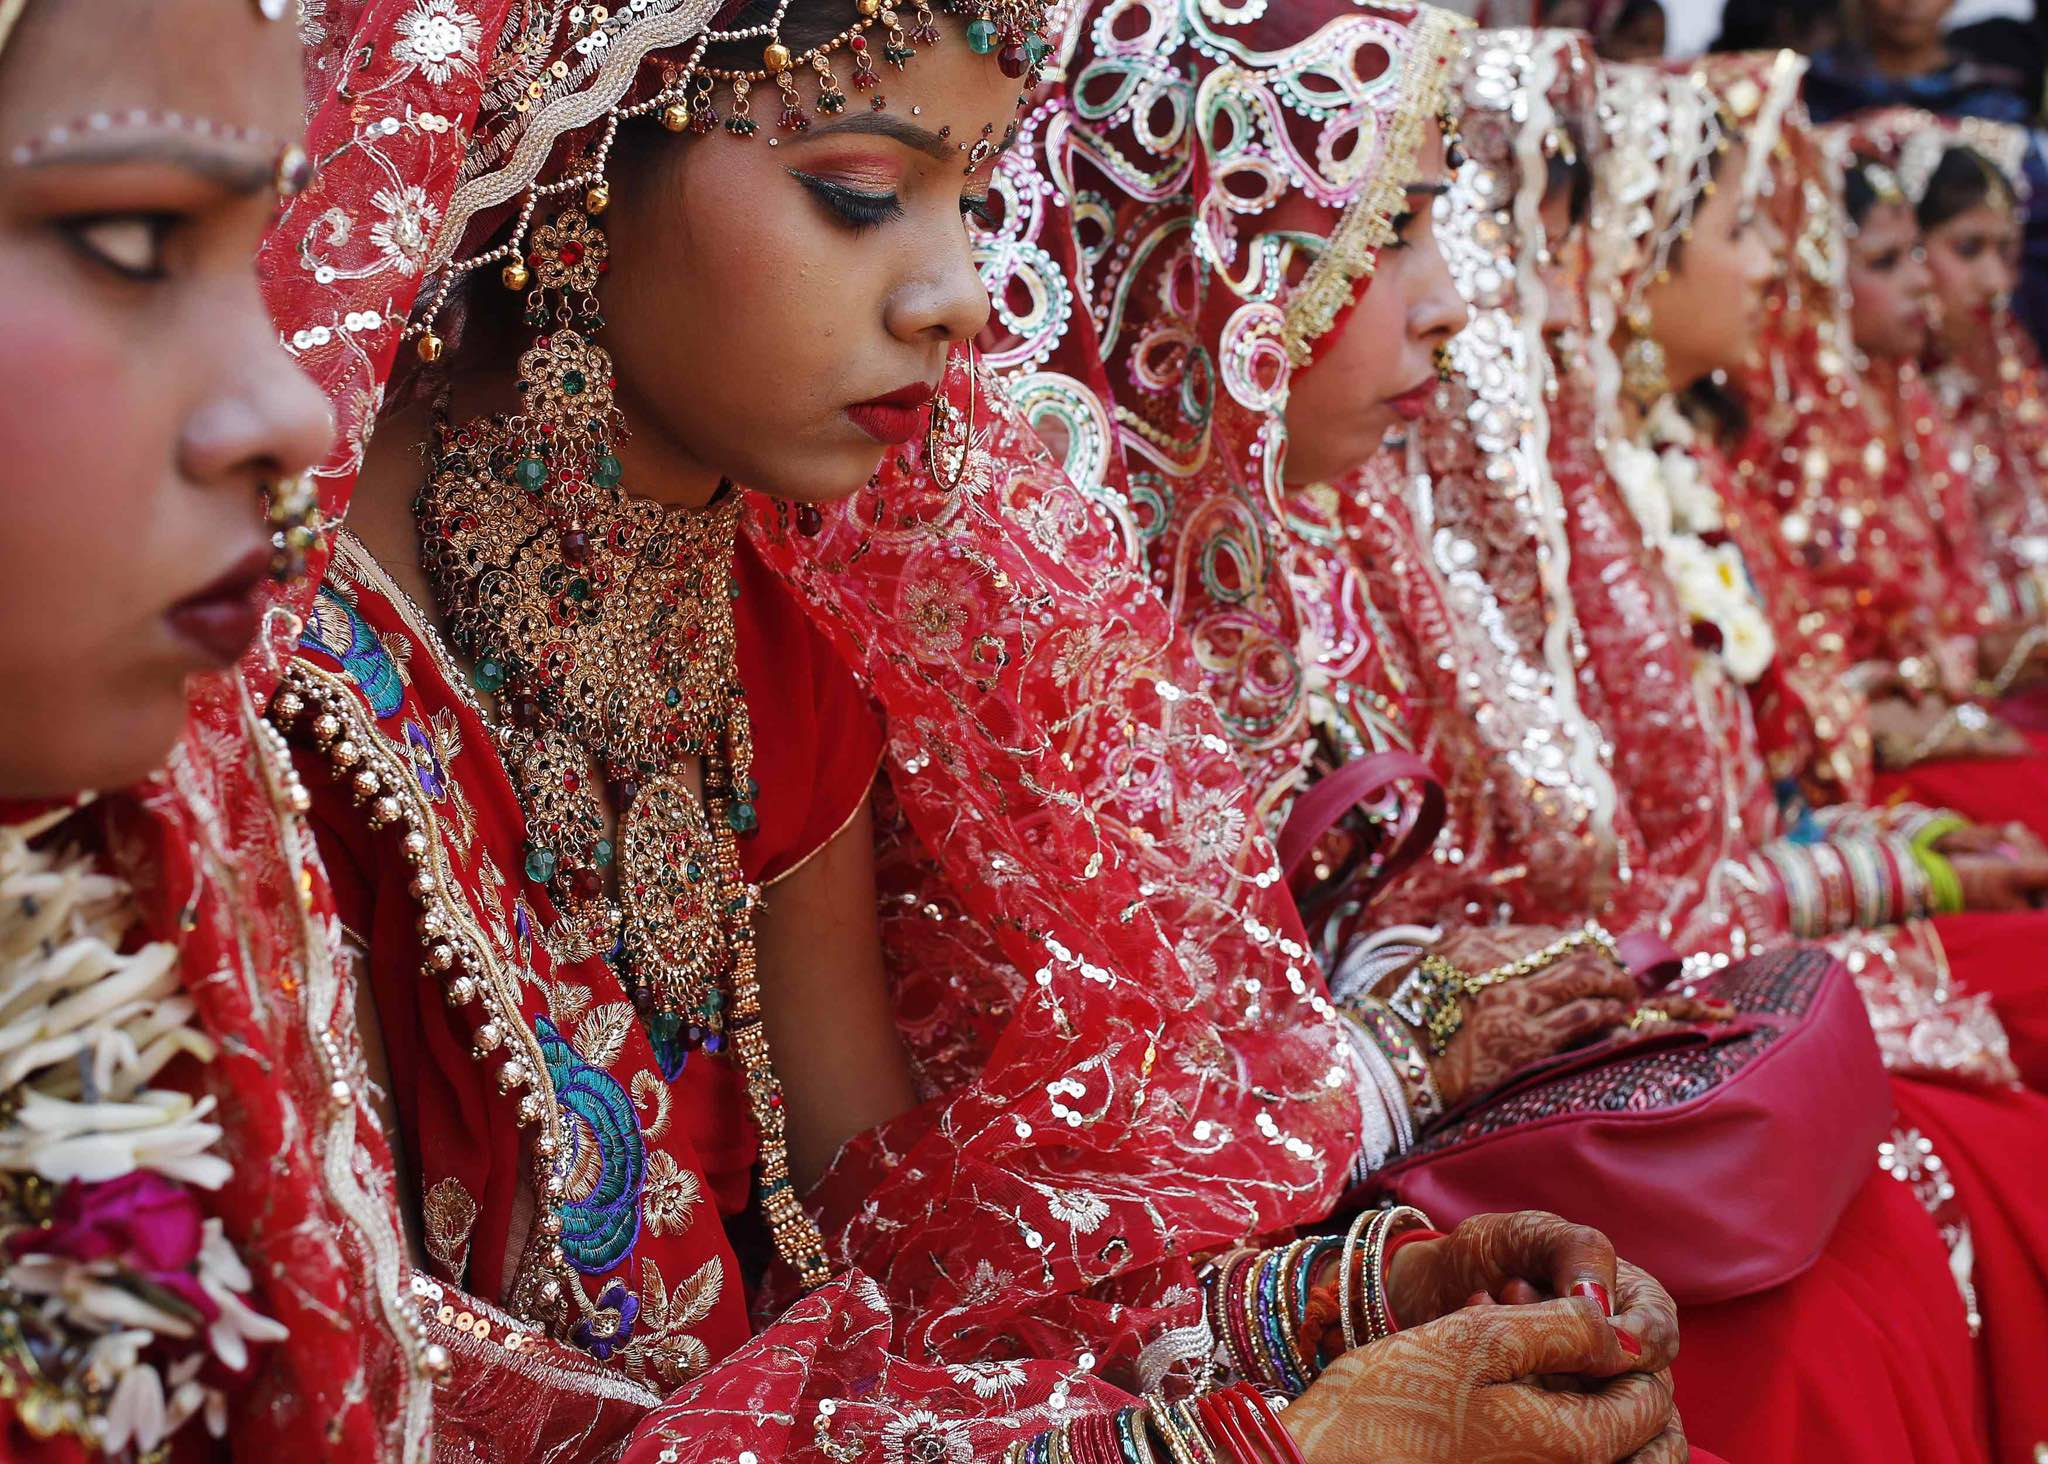 The government claimed there are 23 million child brides in the country. Representative image credit: Reuters/Anindito Mukherjee